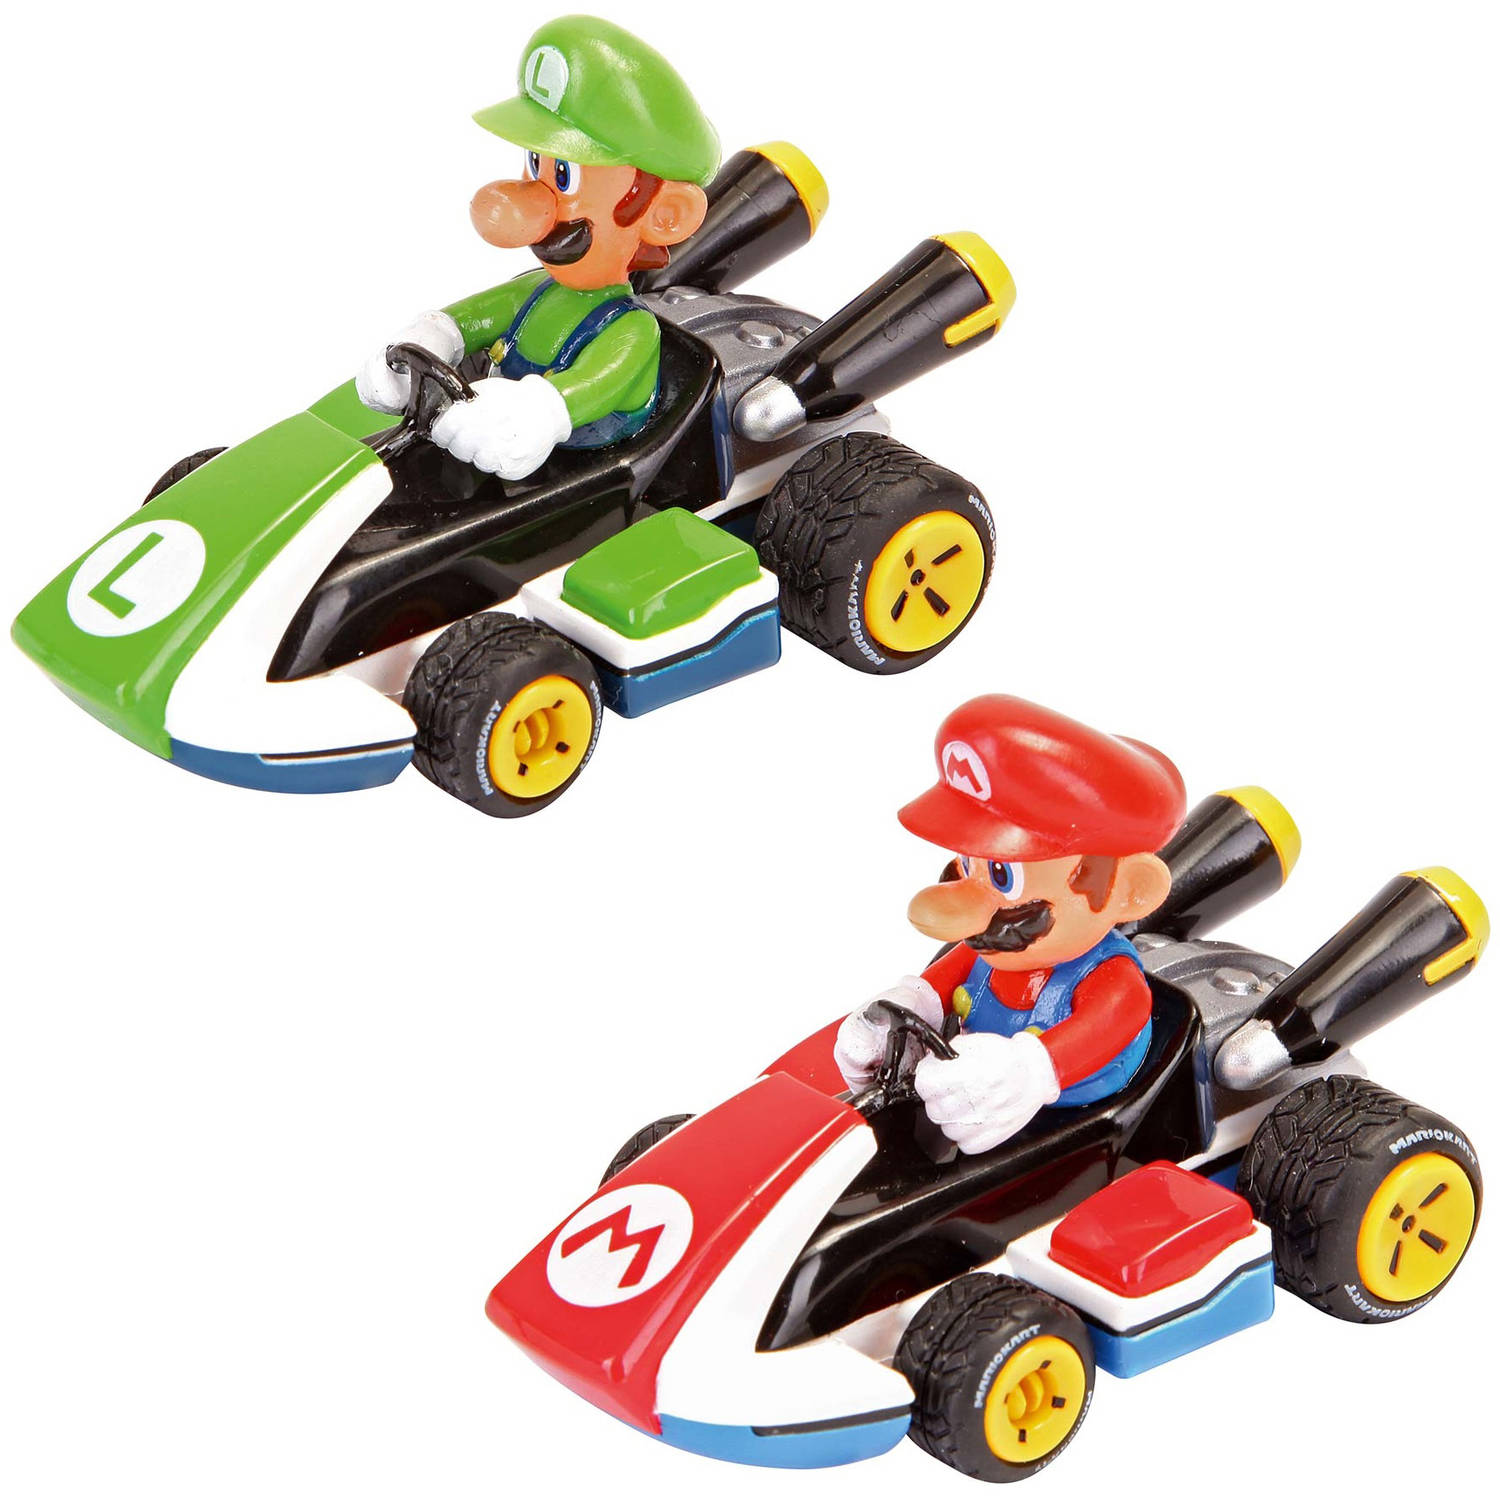 Carrera Pull and Speed Mario Kart 8 Twin-Pack Racers, Mario and Luigi